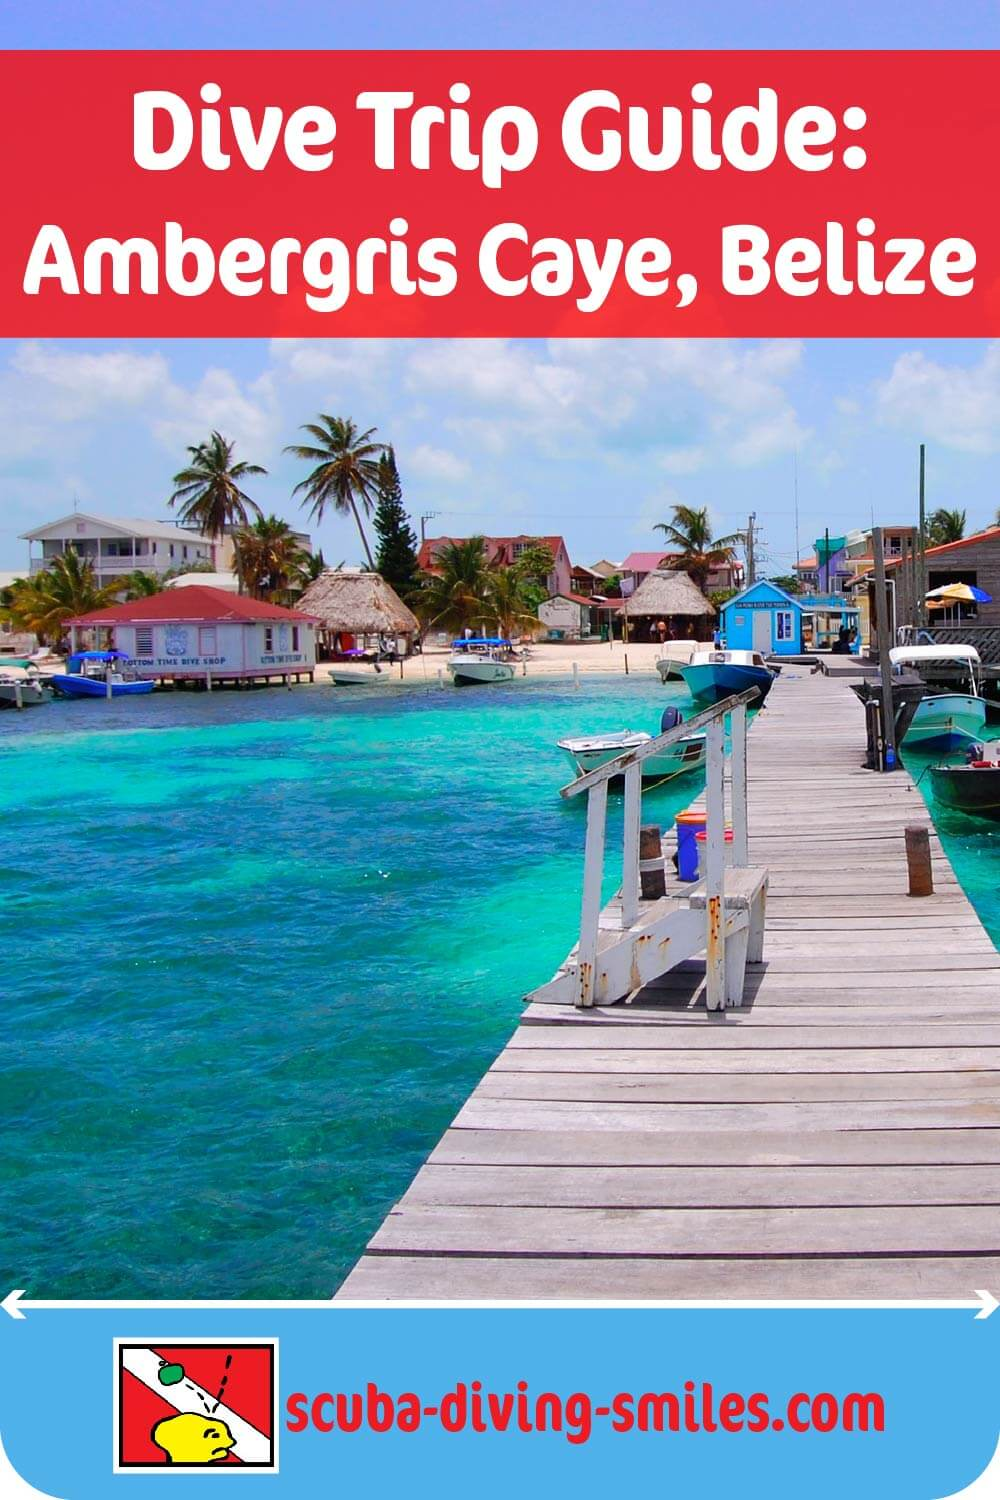 scuba diving guide to ambergris caye, belize